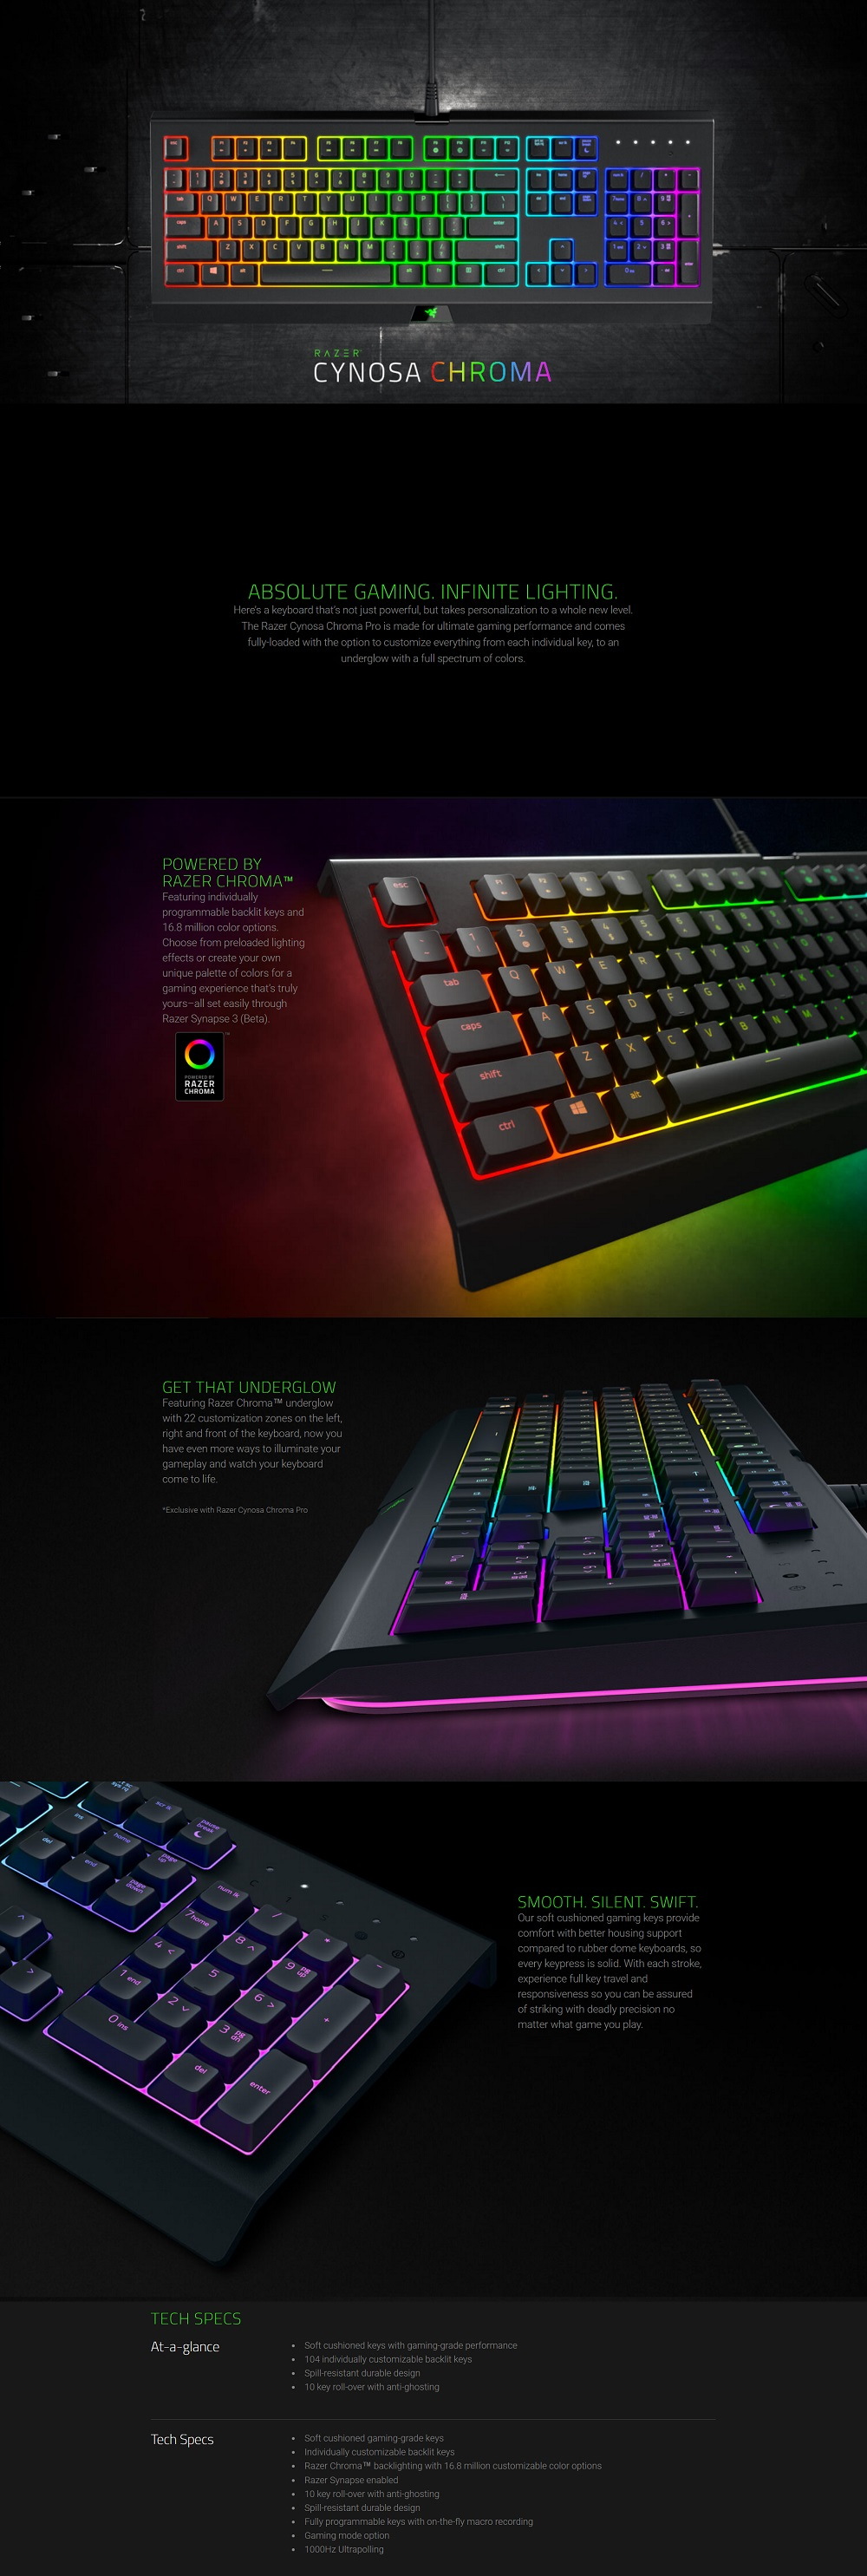 Razer Cynosa Chroma Multicolor Membrance Gaming Keyboard